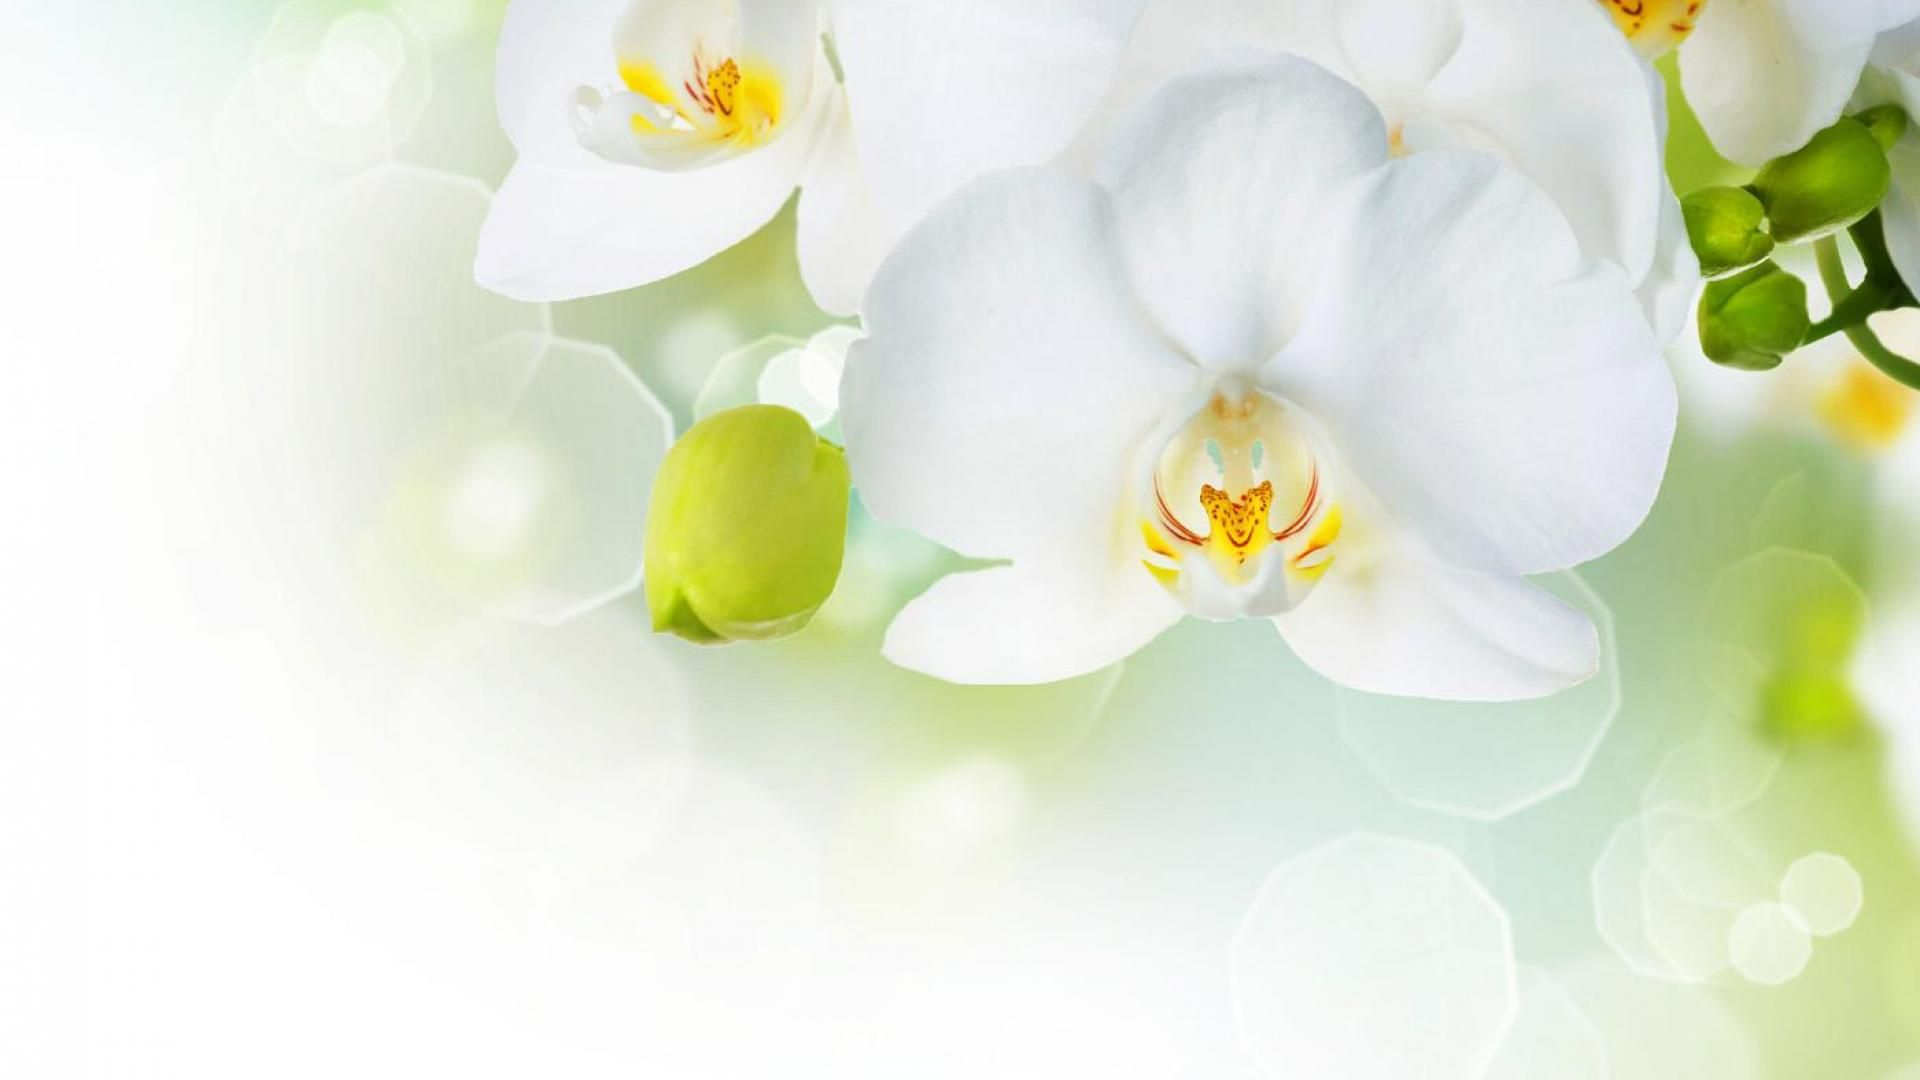 How To Care For Orchids Flower Orchid Wallpaper Orchid Flower Orchid Care